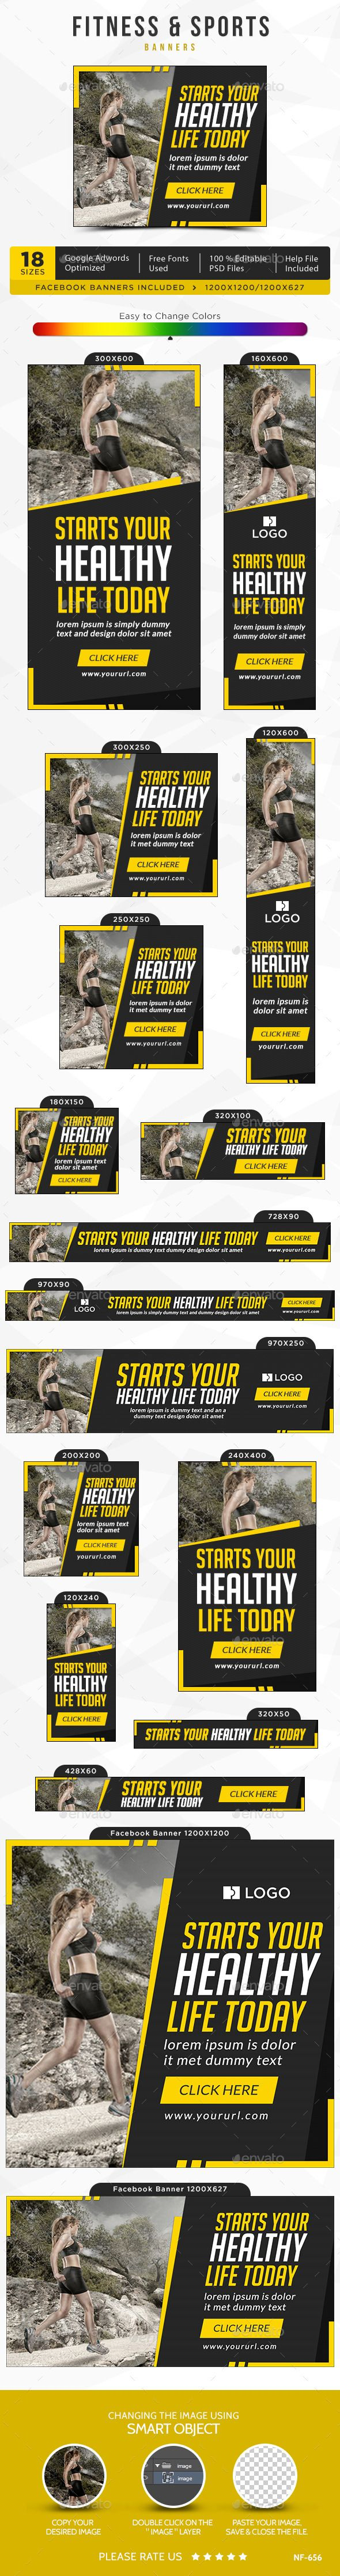 Fitness & Sports Banners Template #design #ads Download: http://graphicriver.net/item/fitness-sports-banners/12953380?ref=ksioks